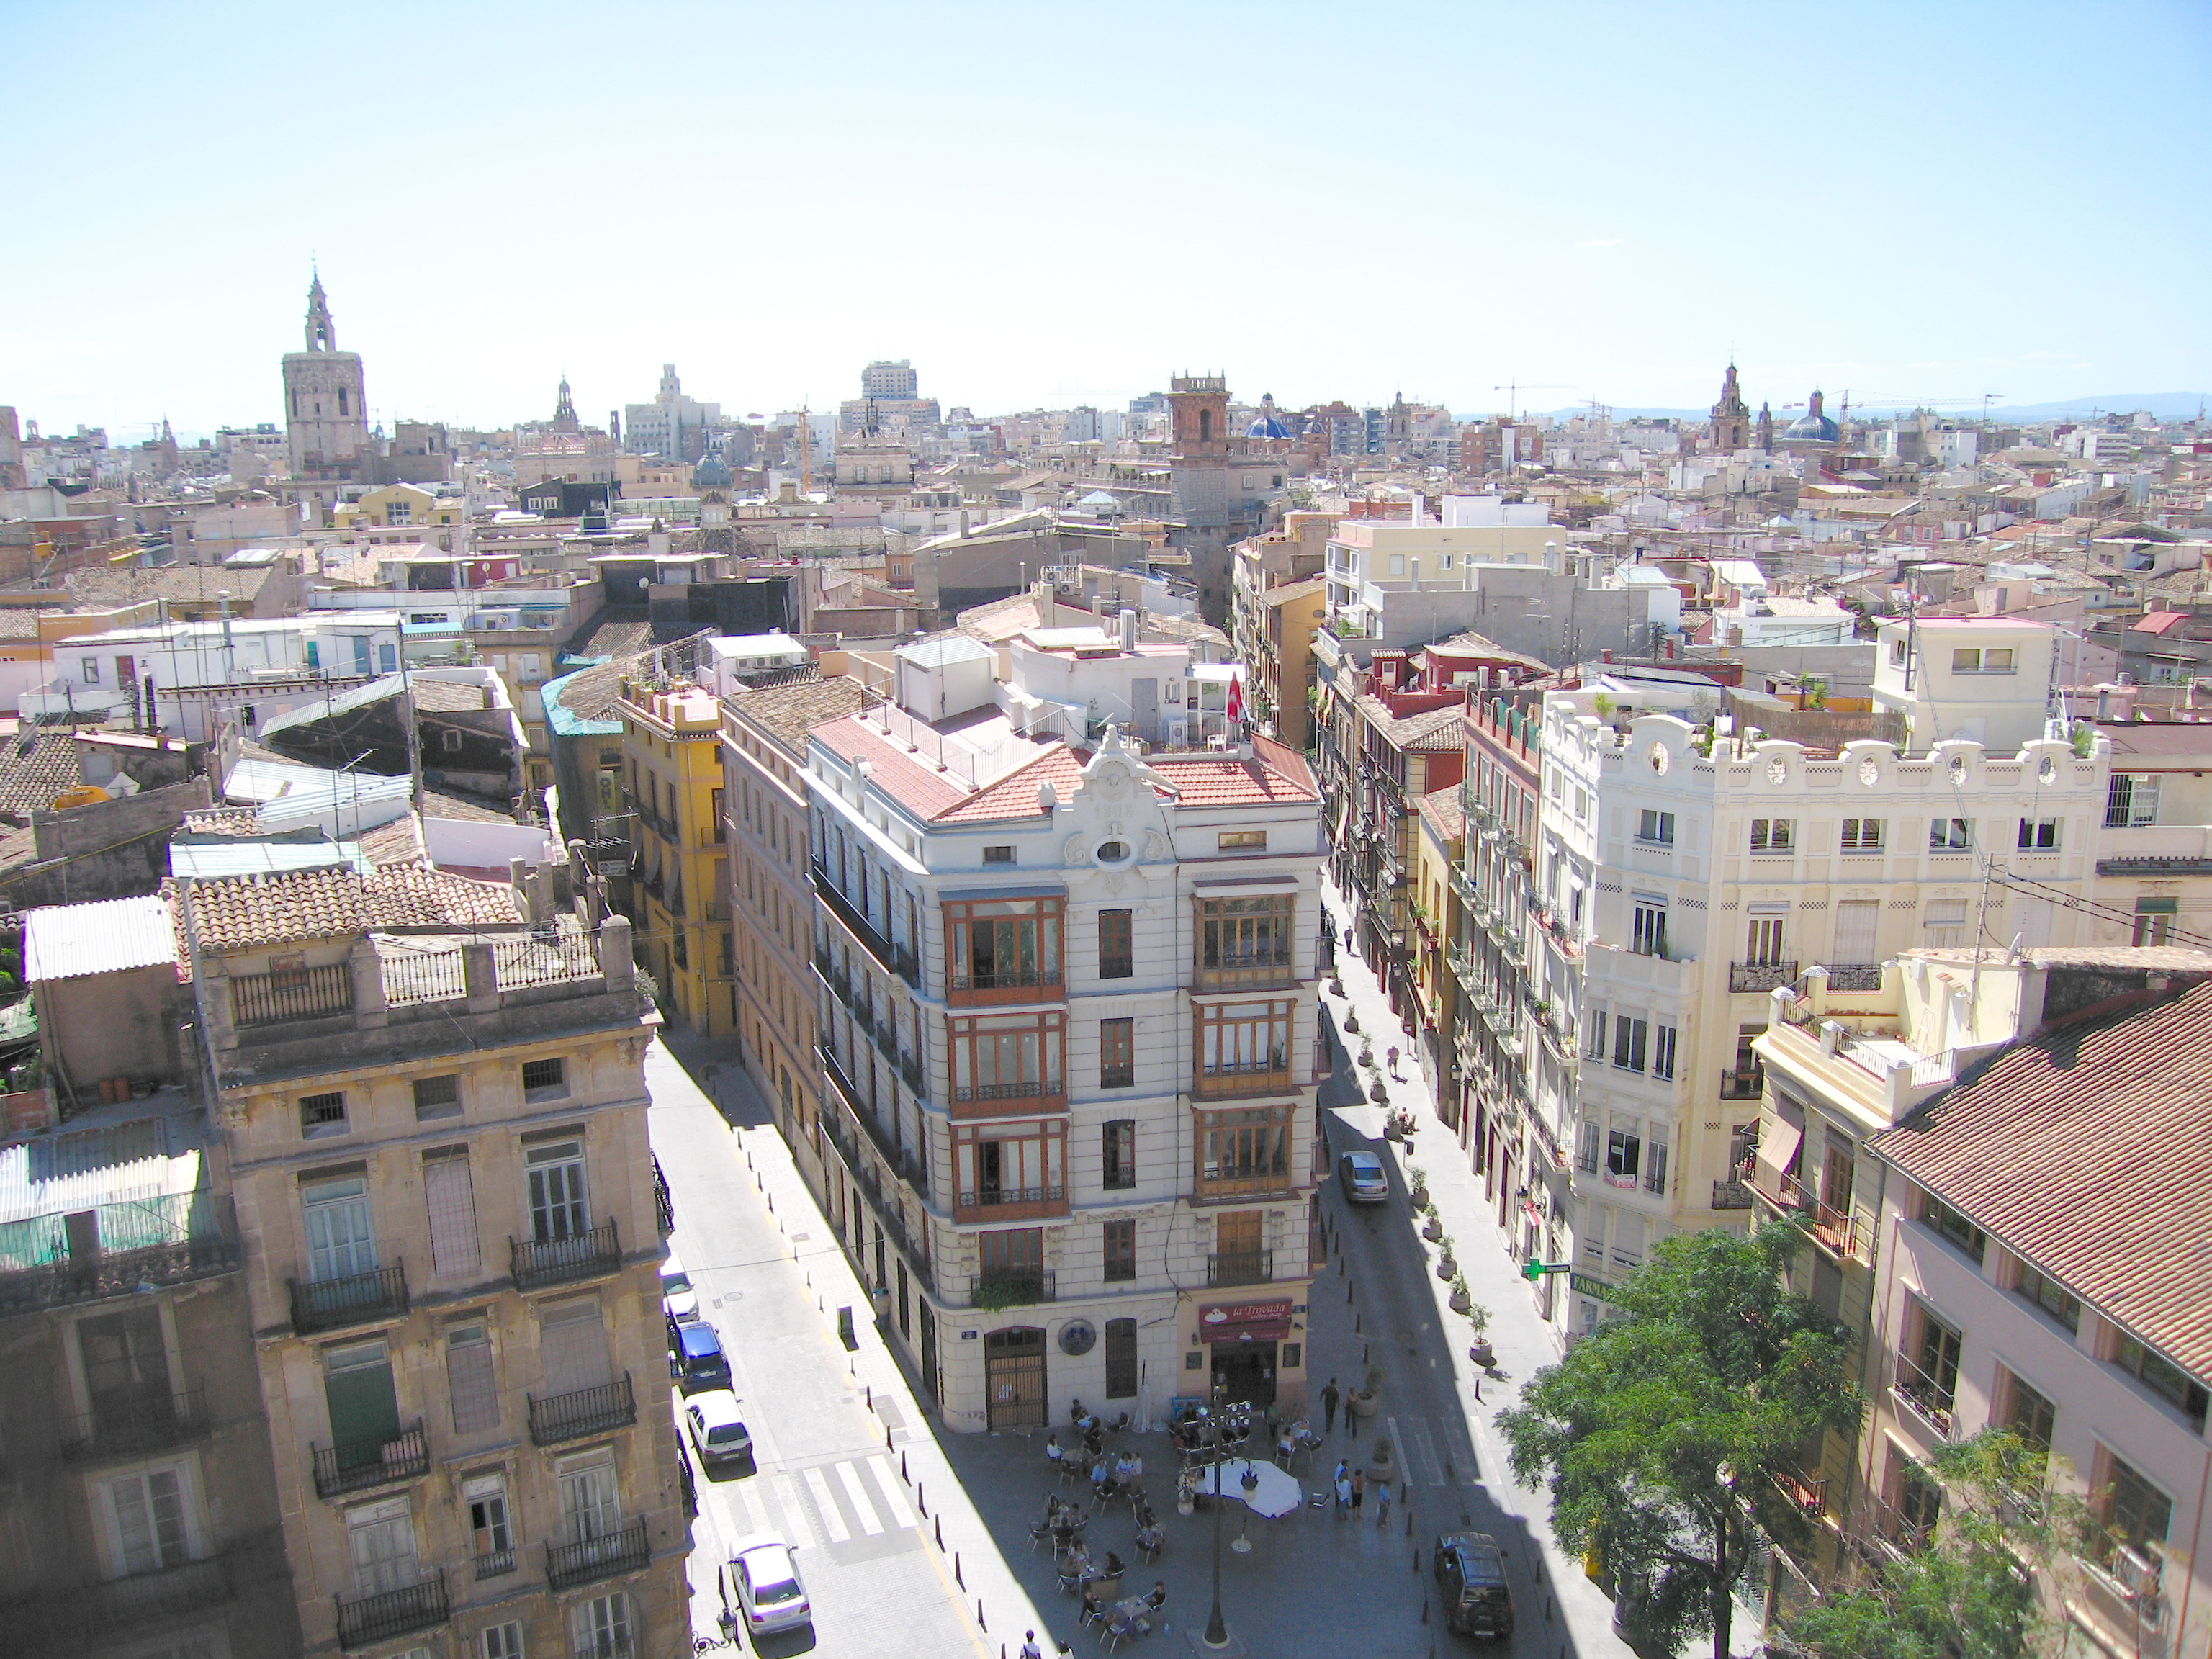 Going to Valencia? Click here to discover the best travel tips to take full advantage of your trip to Valencia!